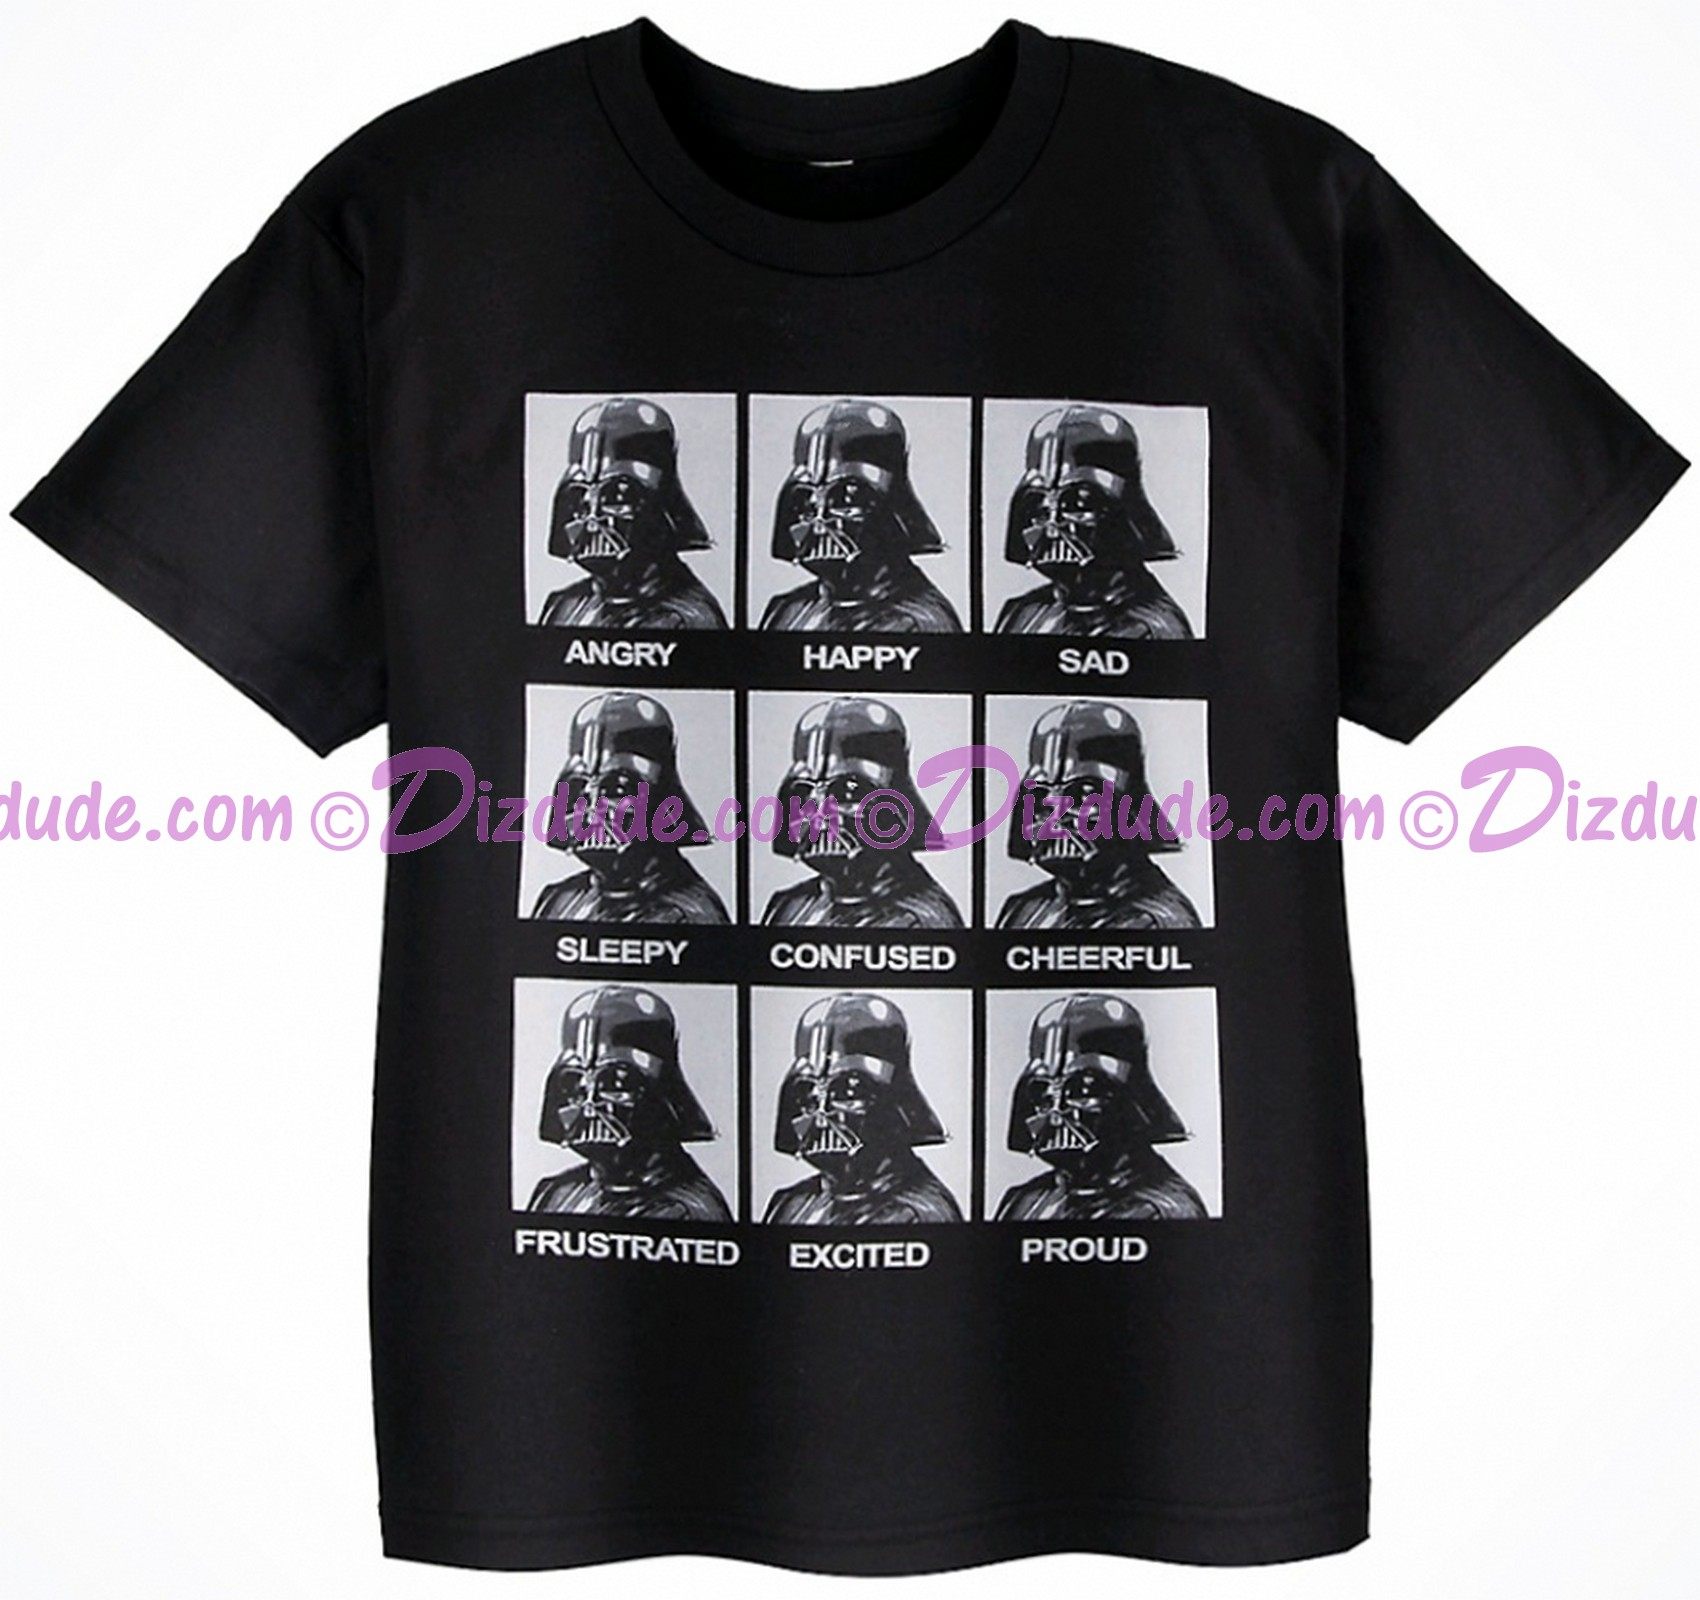 Disney Star Wars Darth Vader Emotions Youth T-Shirt (Tshirt, T shirt or Tee) © Dizdude.com